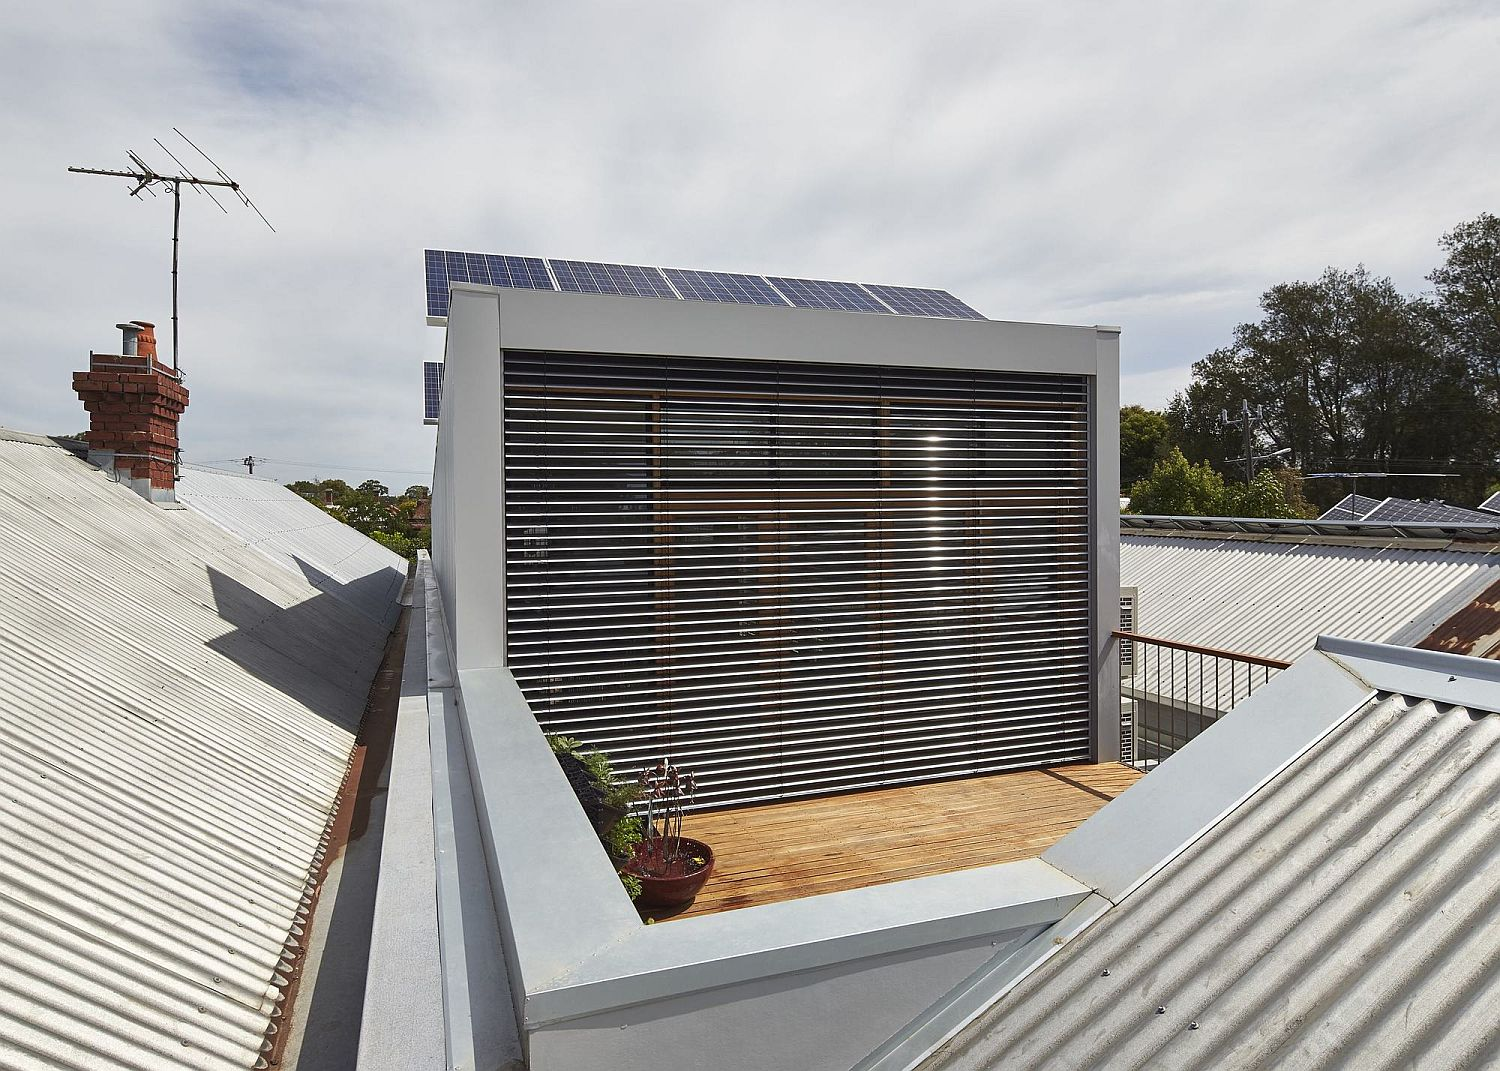 Solar-panels-on-the-home-brings-sustainable-energy-to-the-house